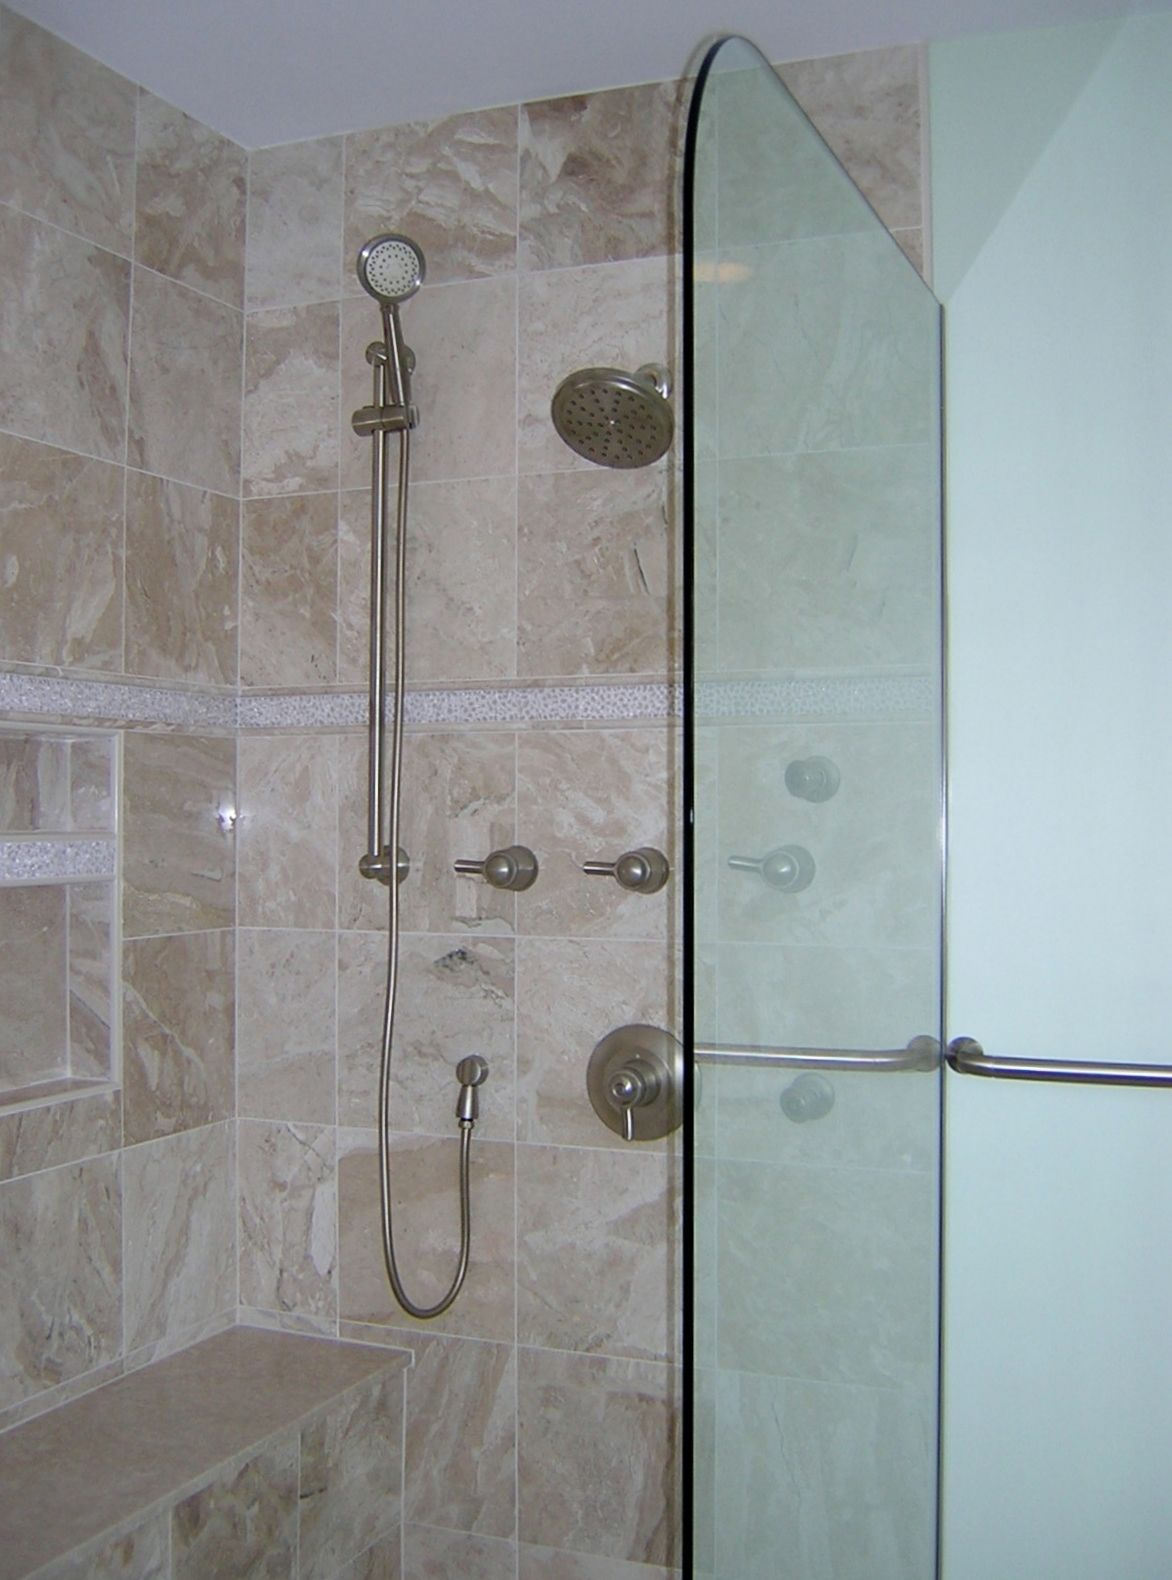 Half shower door | OUR BATHROOM REMODELS | Pinterest | Shower doors ...